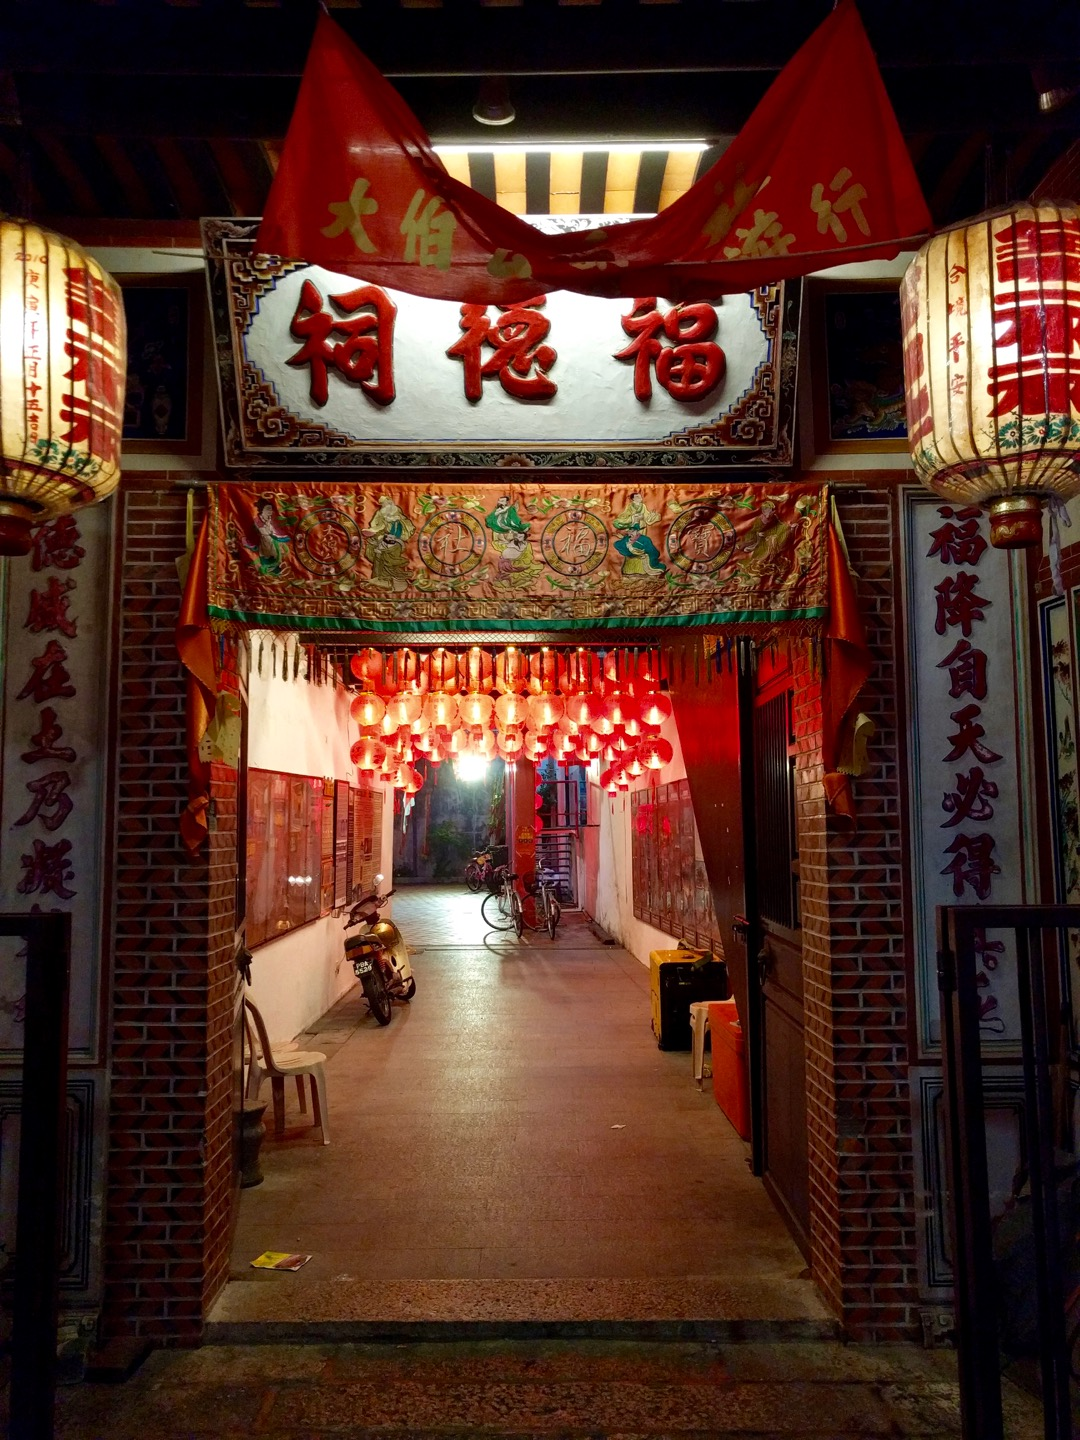 Entrance to Hock Teik Cheng Sin, a Hokkien clan Temple in Lebuh Armenian, Penang